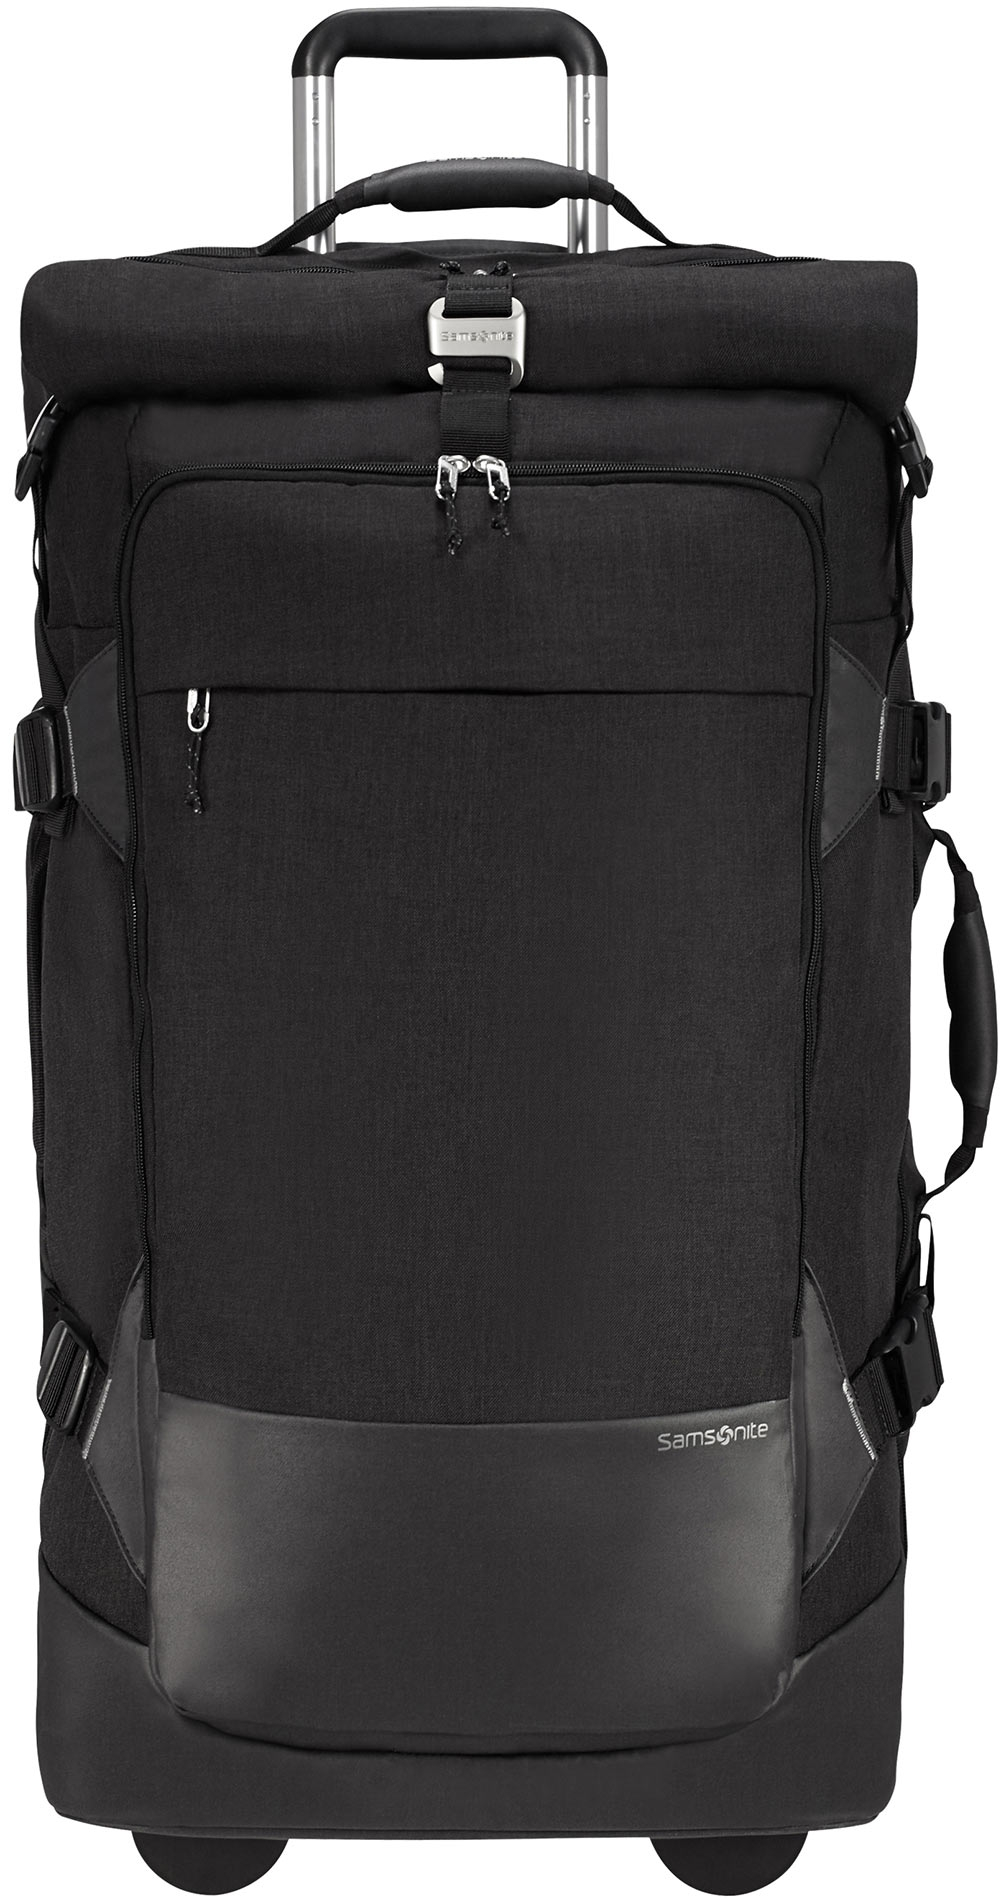 SAMSONITE ZIPROLL Grand sac avec trolley